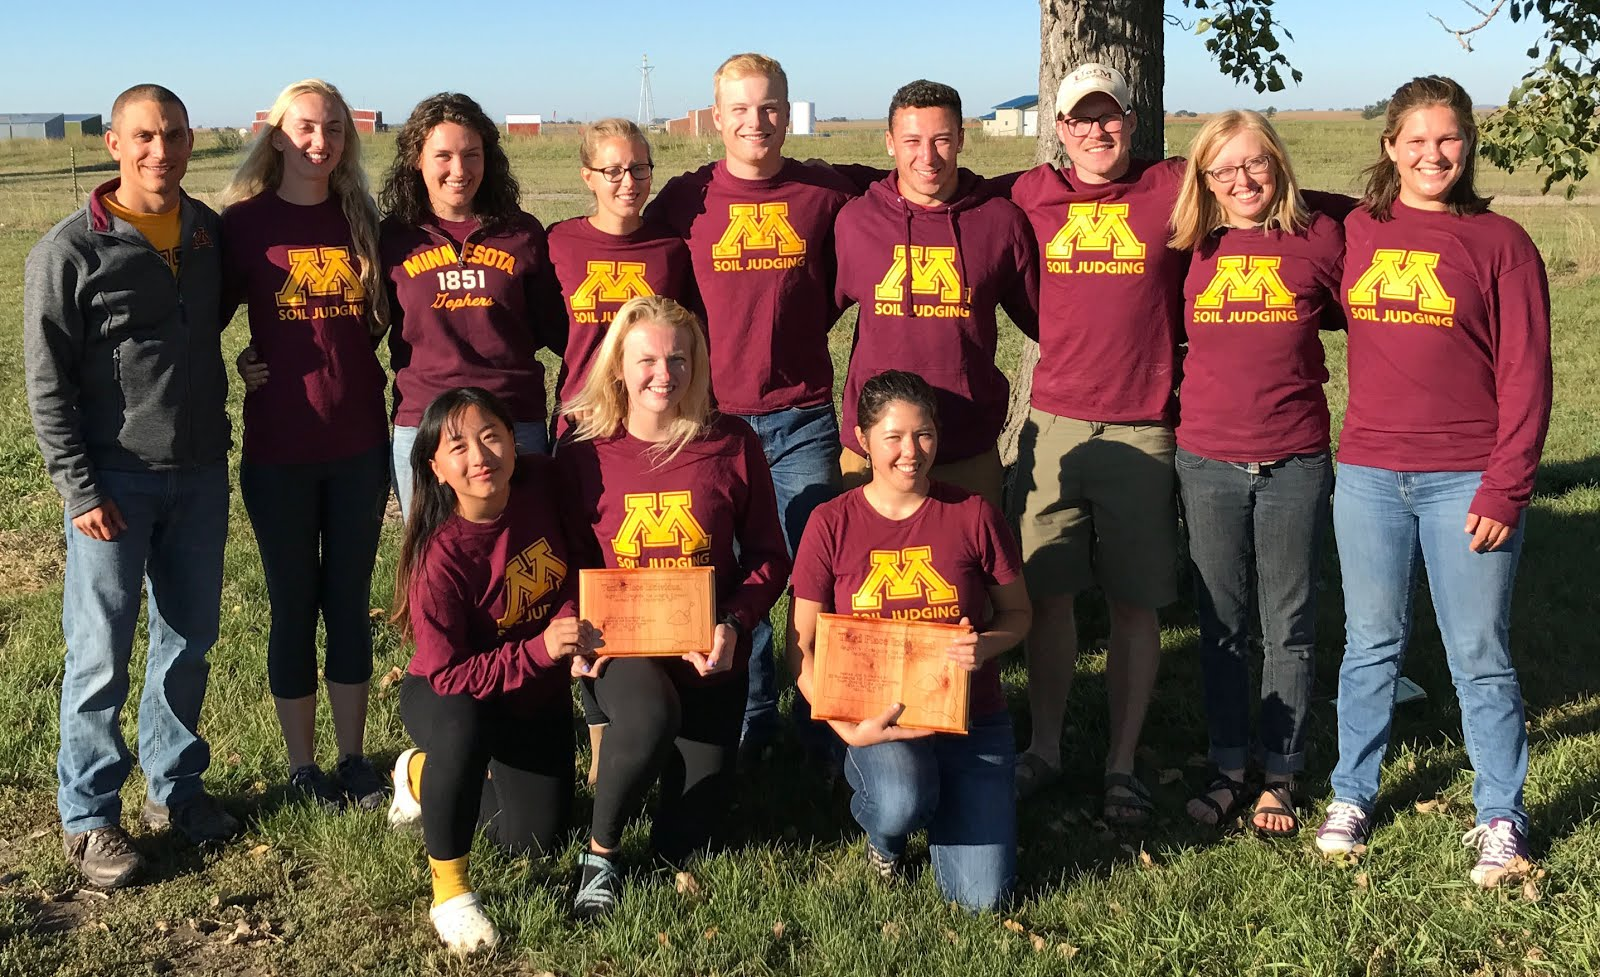 2017 University of Minnesota ASA Regional Soil Judging Team